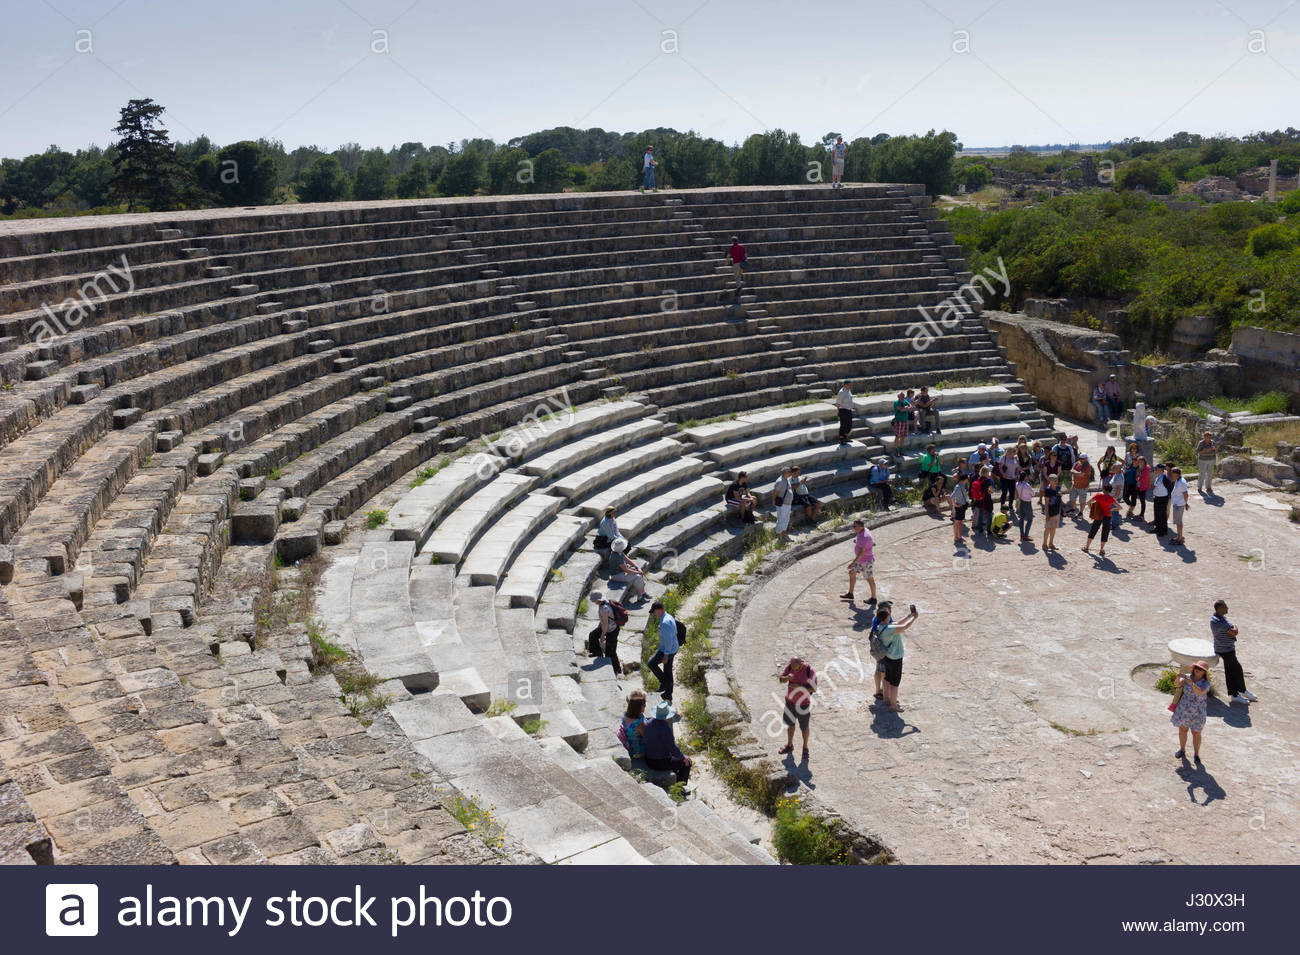 The Roman amphitheatre in the ruins of the ancient city of Salamis, northern Cyprus Stock Photo